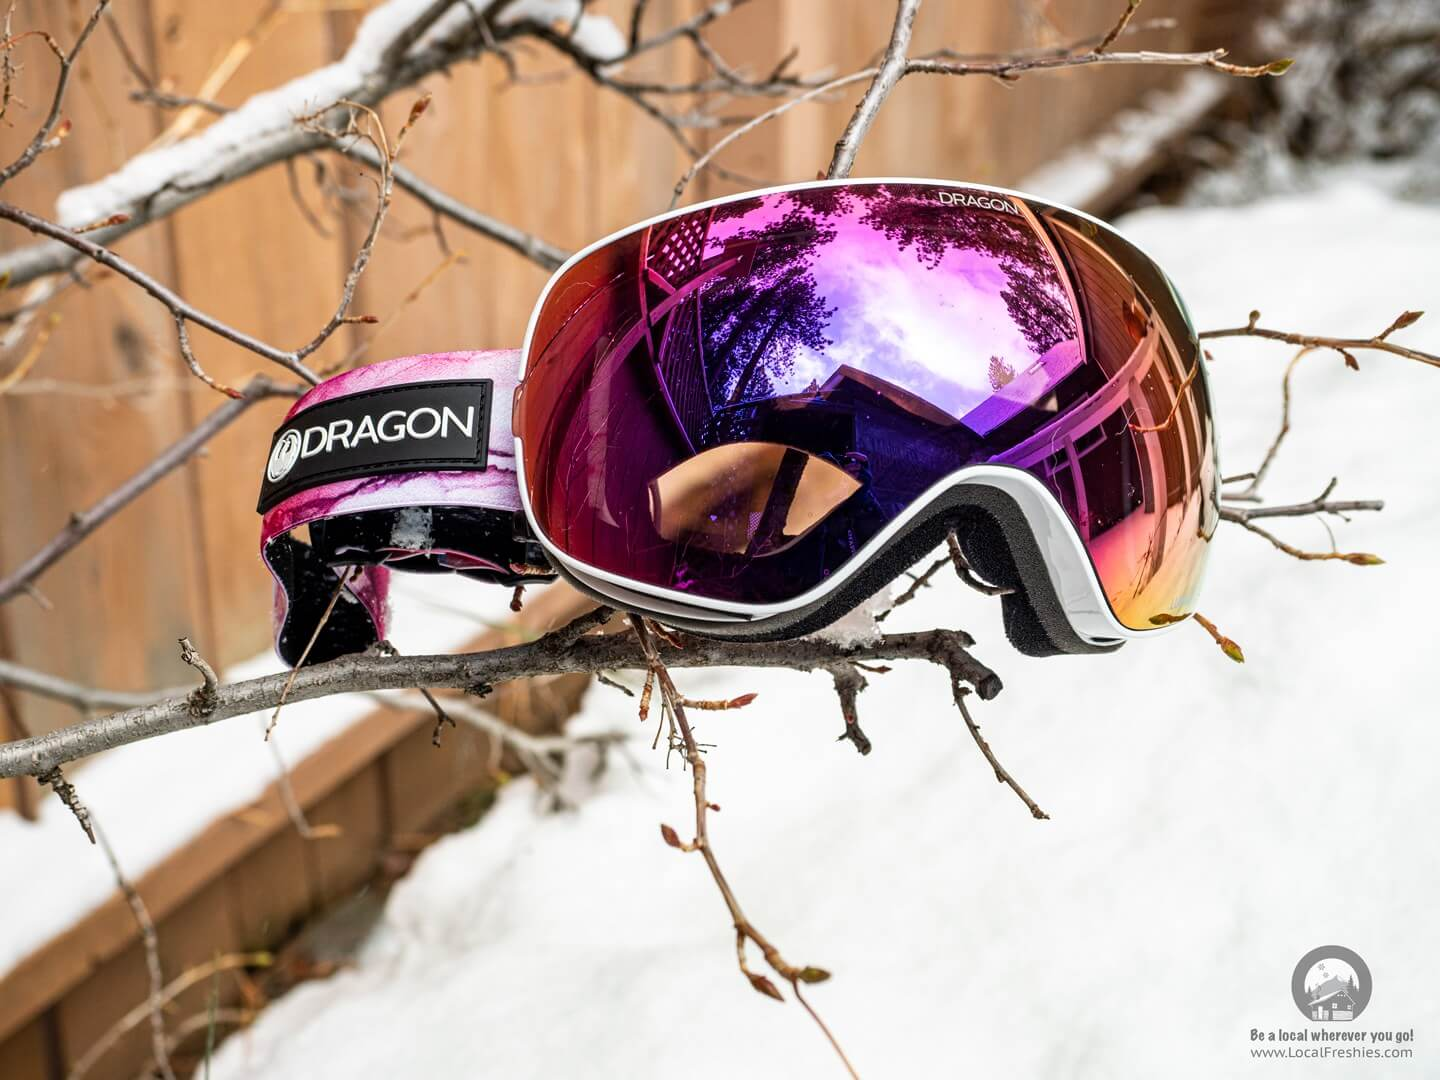 dragon x2 goggles in winter background